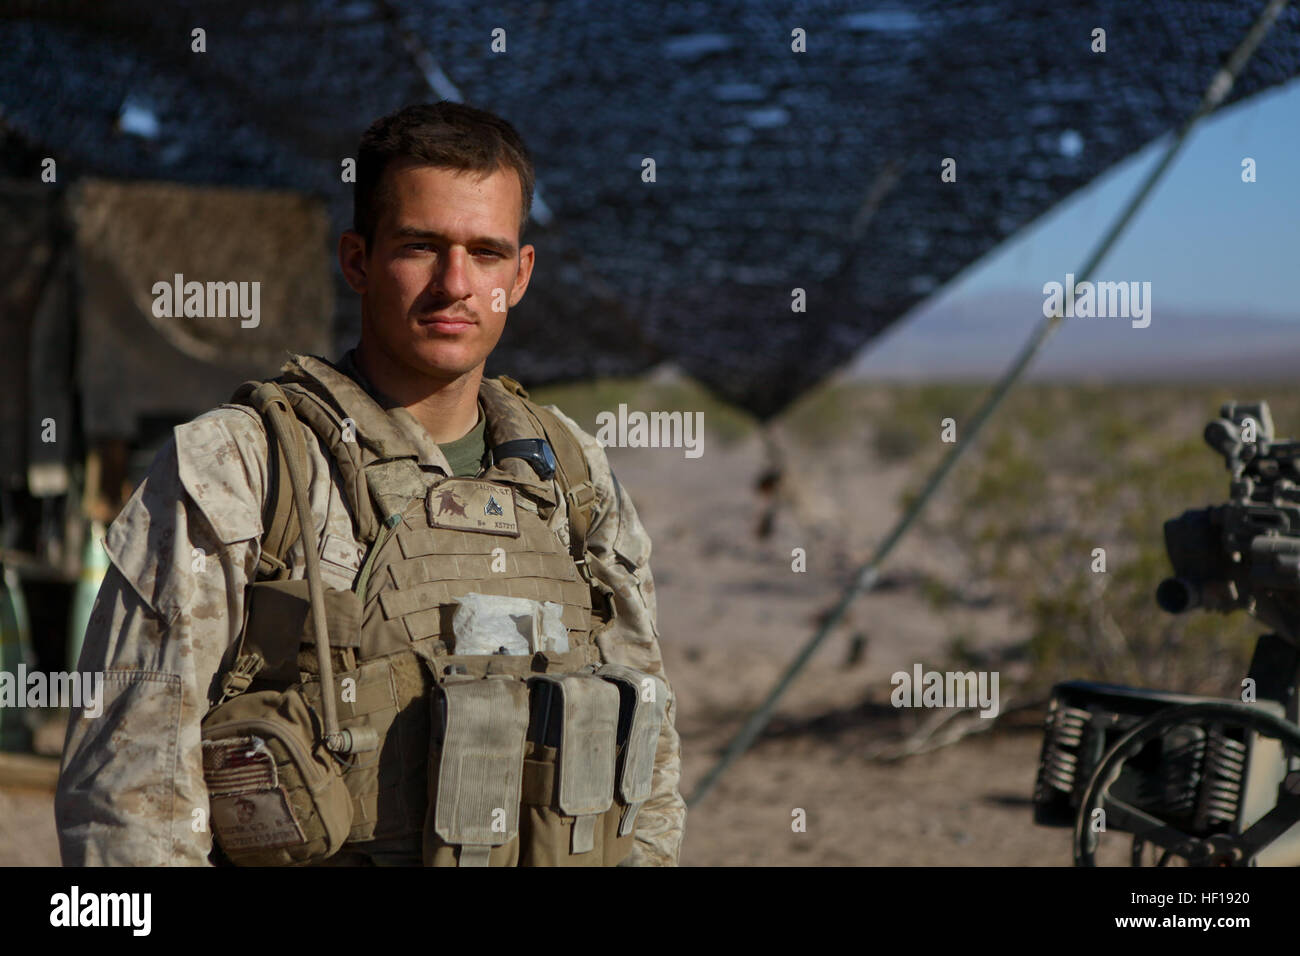 Corporal Gregory Salyer, a gunner serving with Kilo Battery, 3rd Battalion, 12th Marine Regiment, attached to 2nd - Stock Image